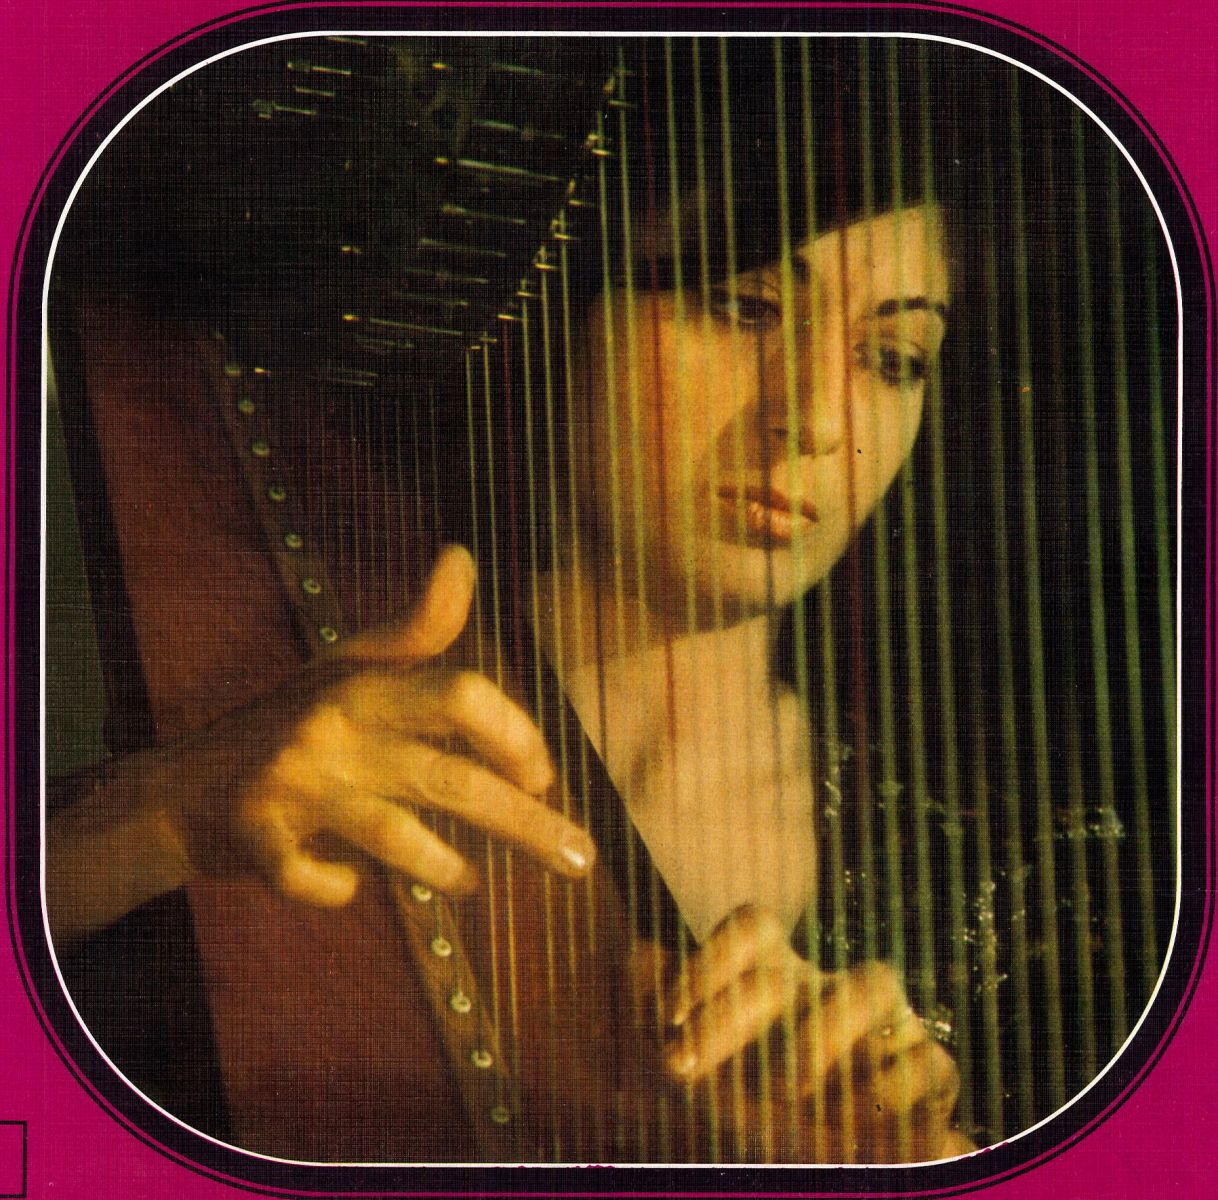 Susanna Mildonian, cover picture of the LP with harp music by Debussy and Ravel, label Decca.